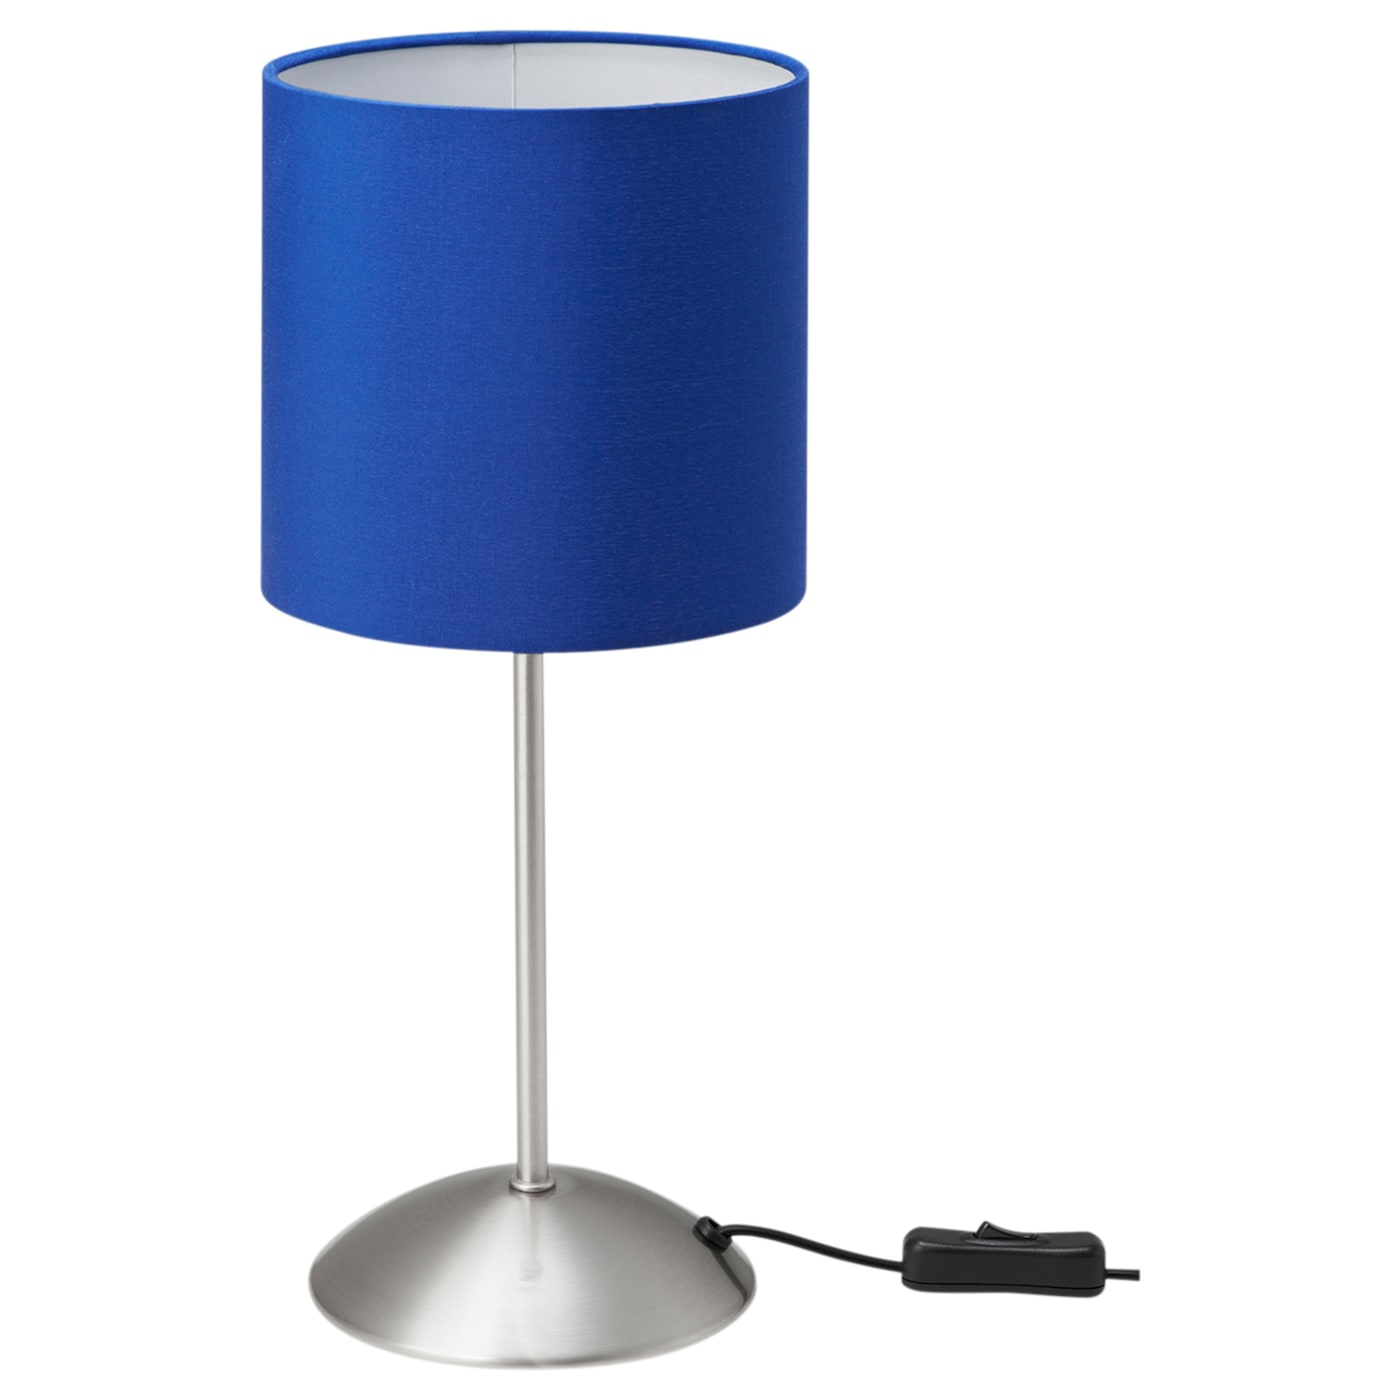 IKEA TIARP table lamp The textile shade provides a diffused and decorative light.